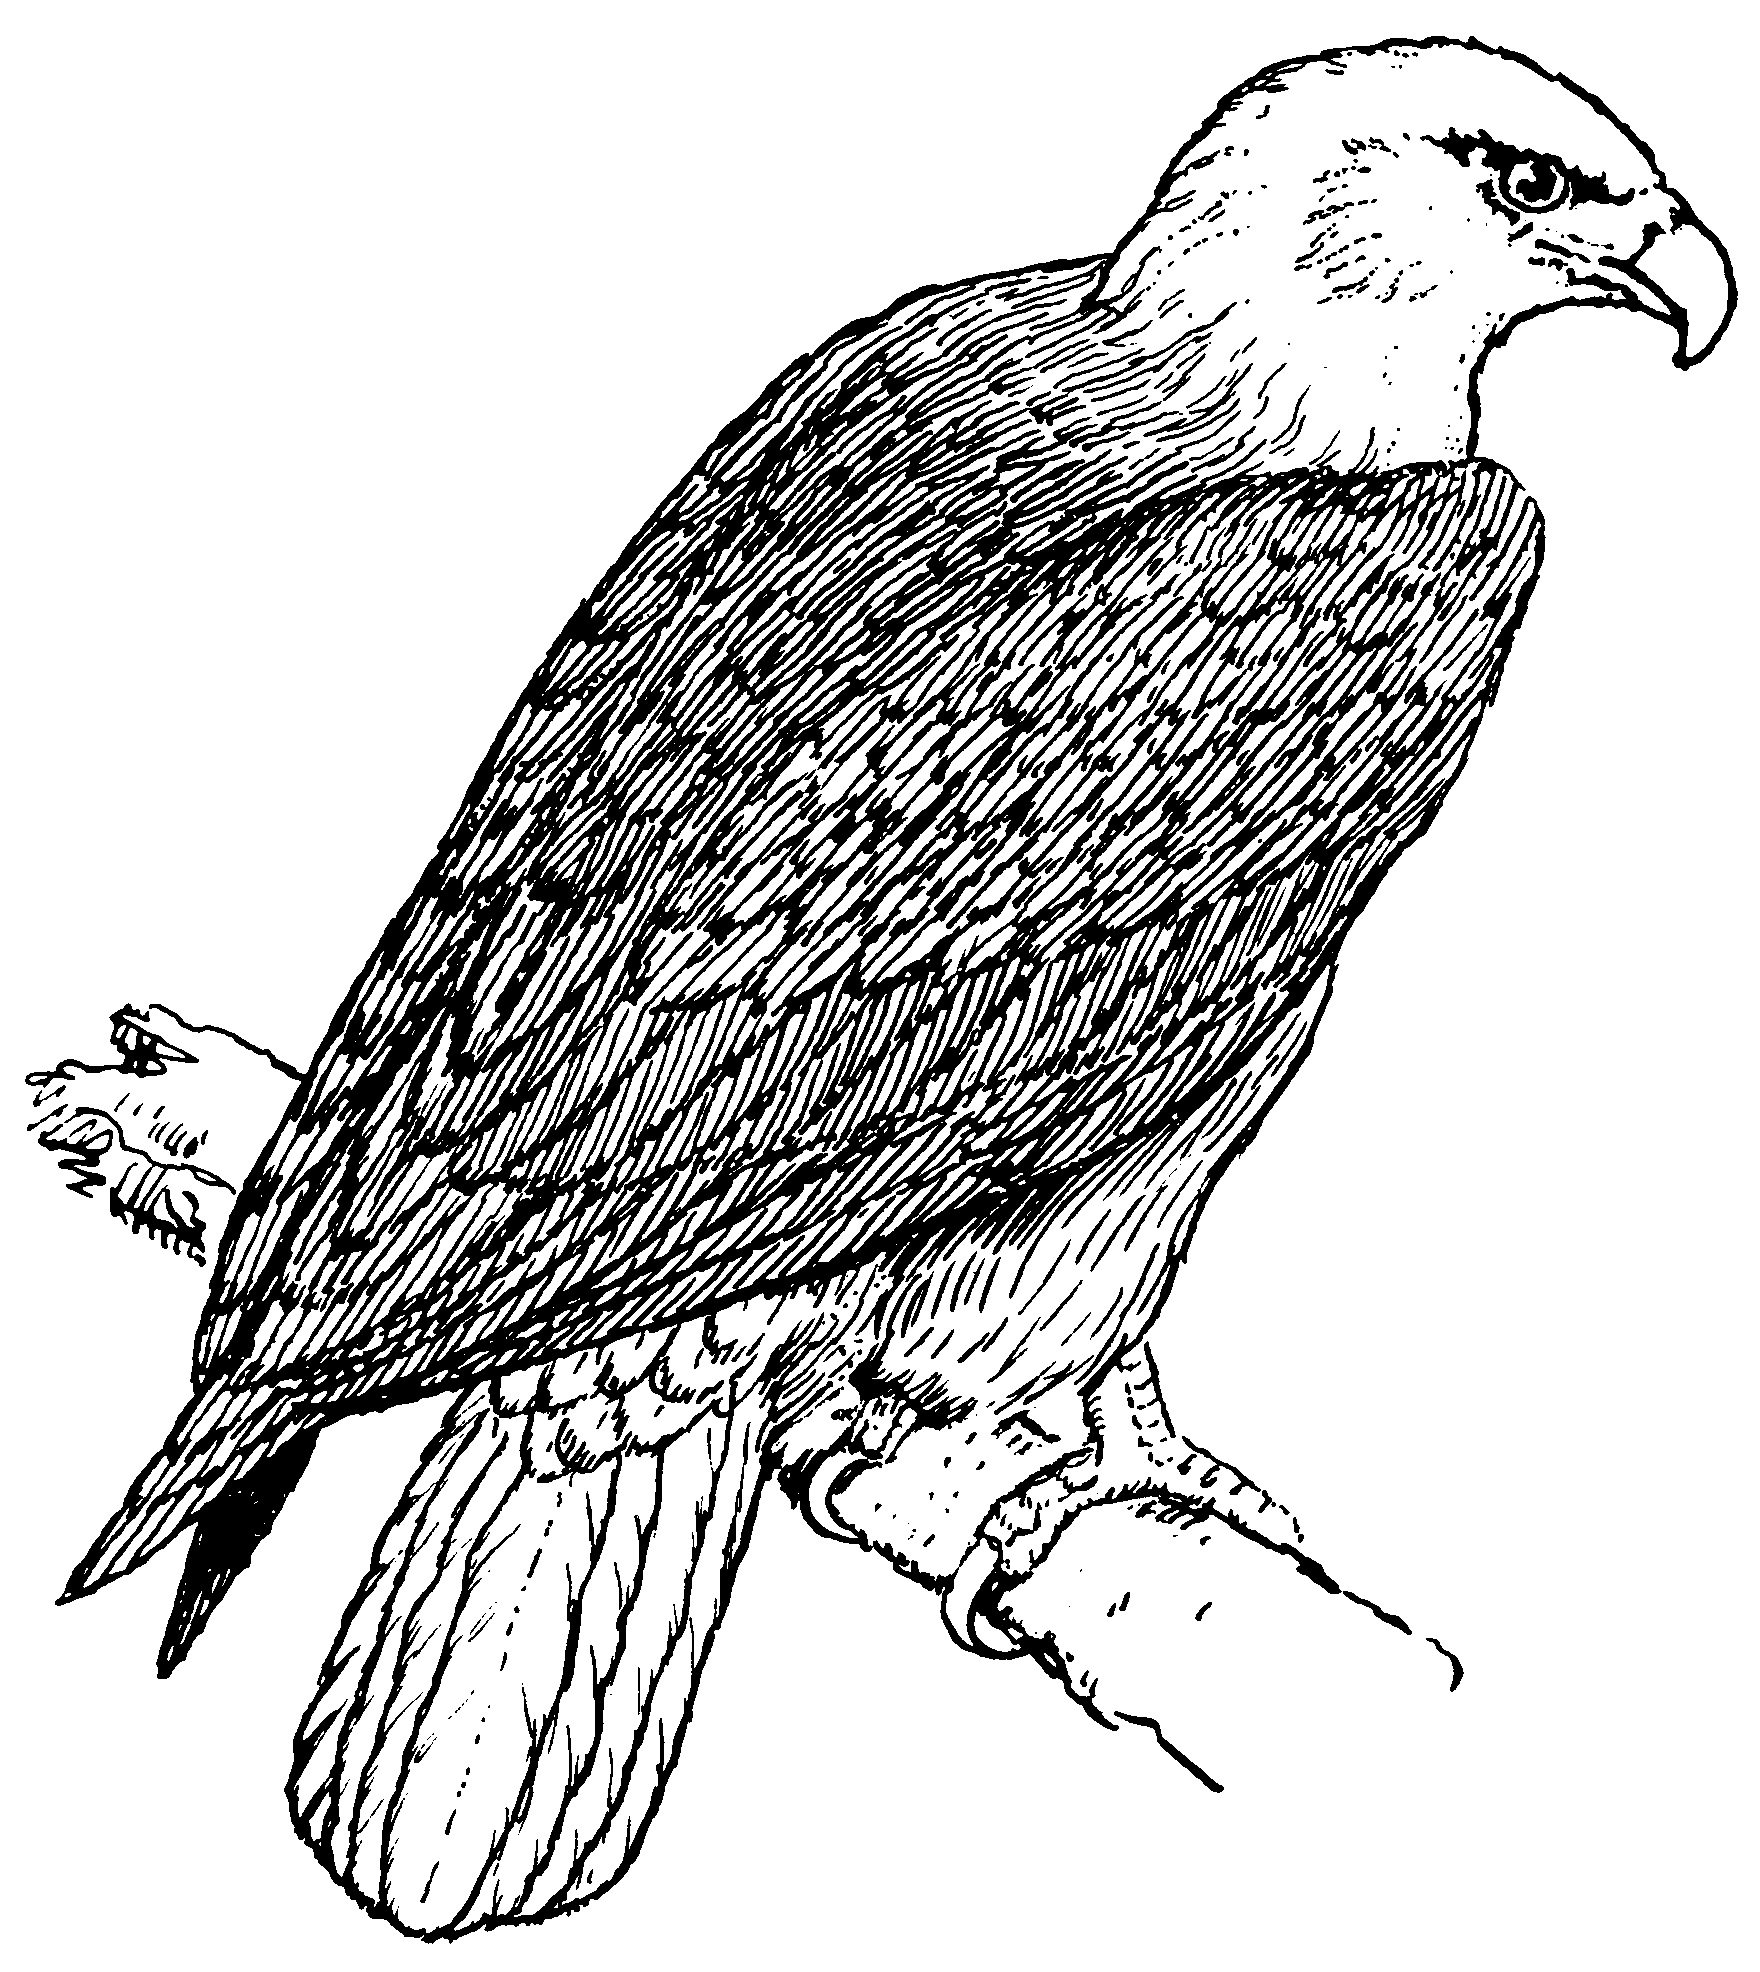 eagle colouring free printable eagle coloring pages for kids eagle colouring 1 1